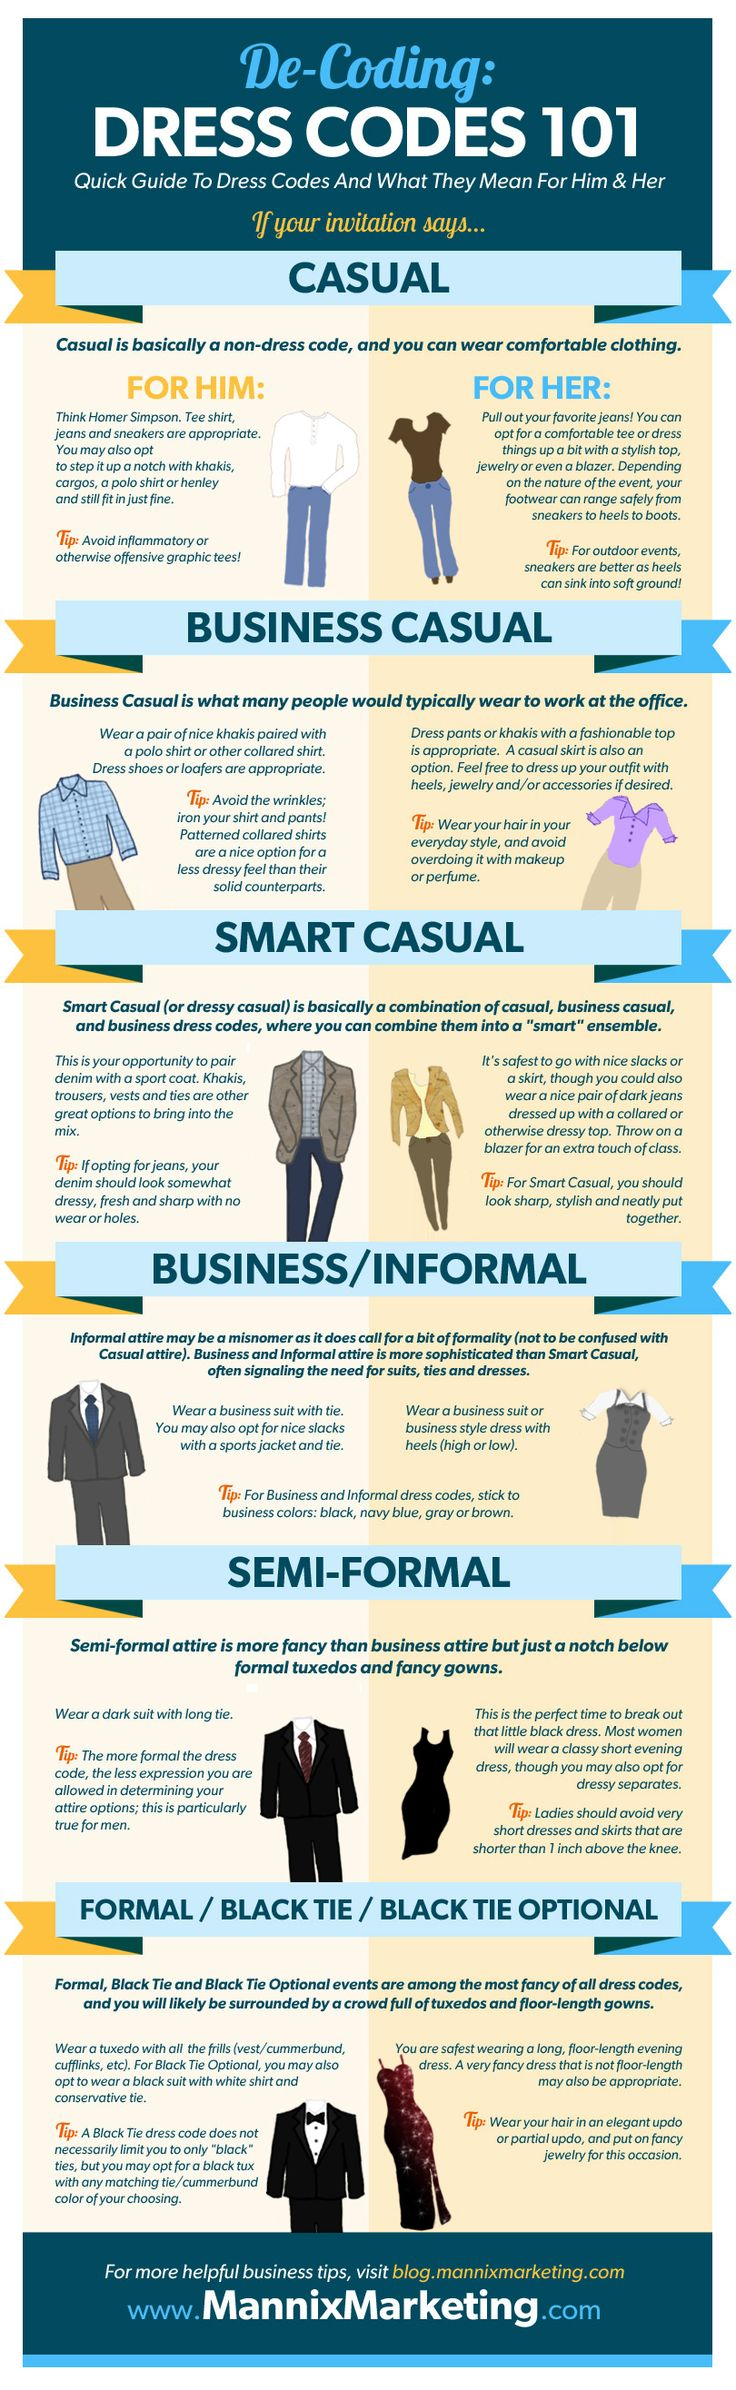 What's the Difference Between Business Casual and Smart Casual? A Handy Guide on How to Dress. (Infographic)